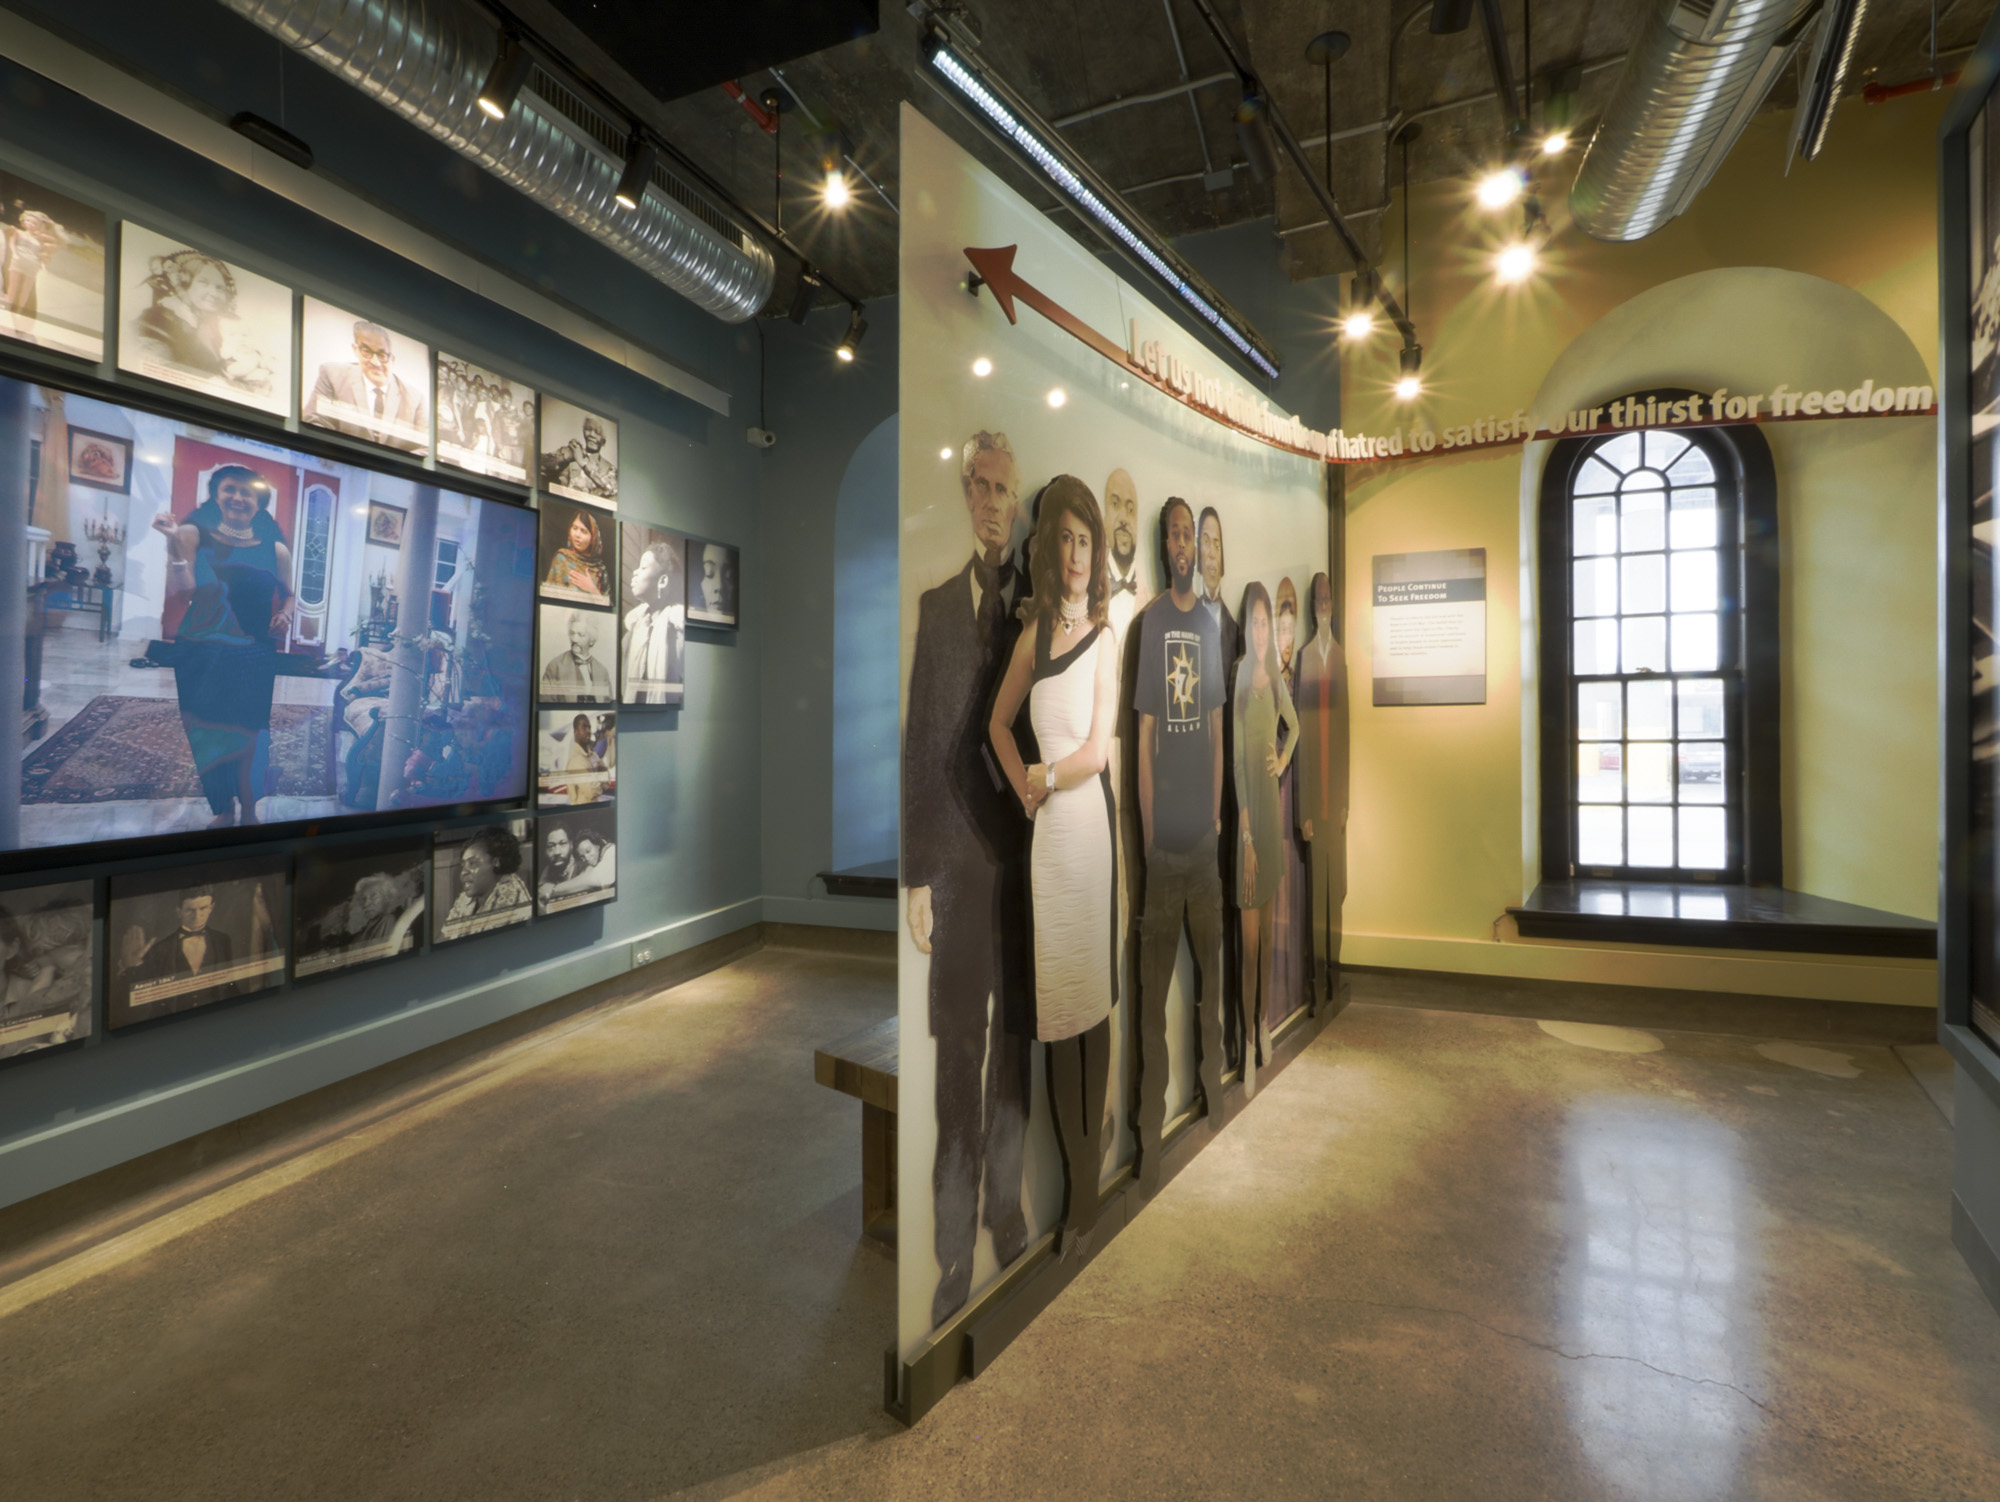 Figure 2. Gallery entrance showing life-size historical and contemporary figures. NiagaraFalls Underground Railroad Heritage Center, Freedom Gallery. Courtesy of Seth Frankel,Studio Tectonic.